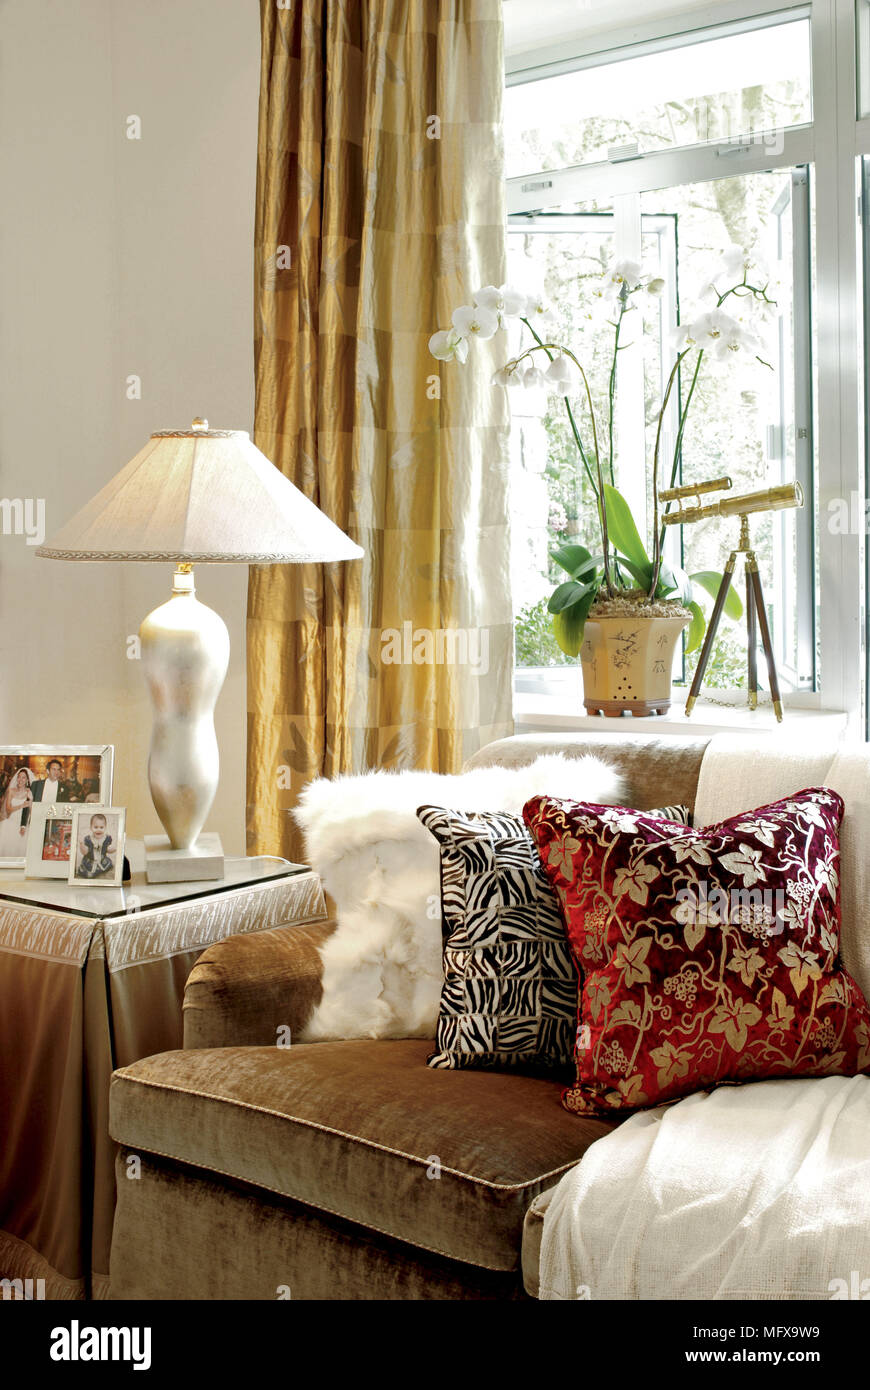 Cushions On Brown Sofa In Front Of Window With Gold